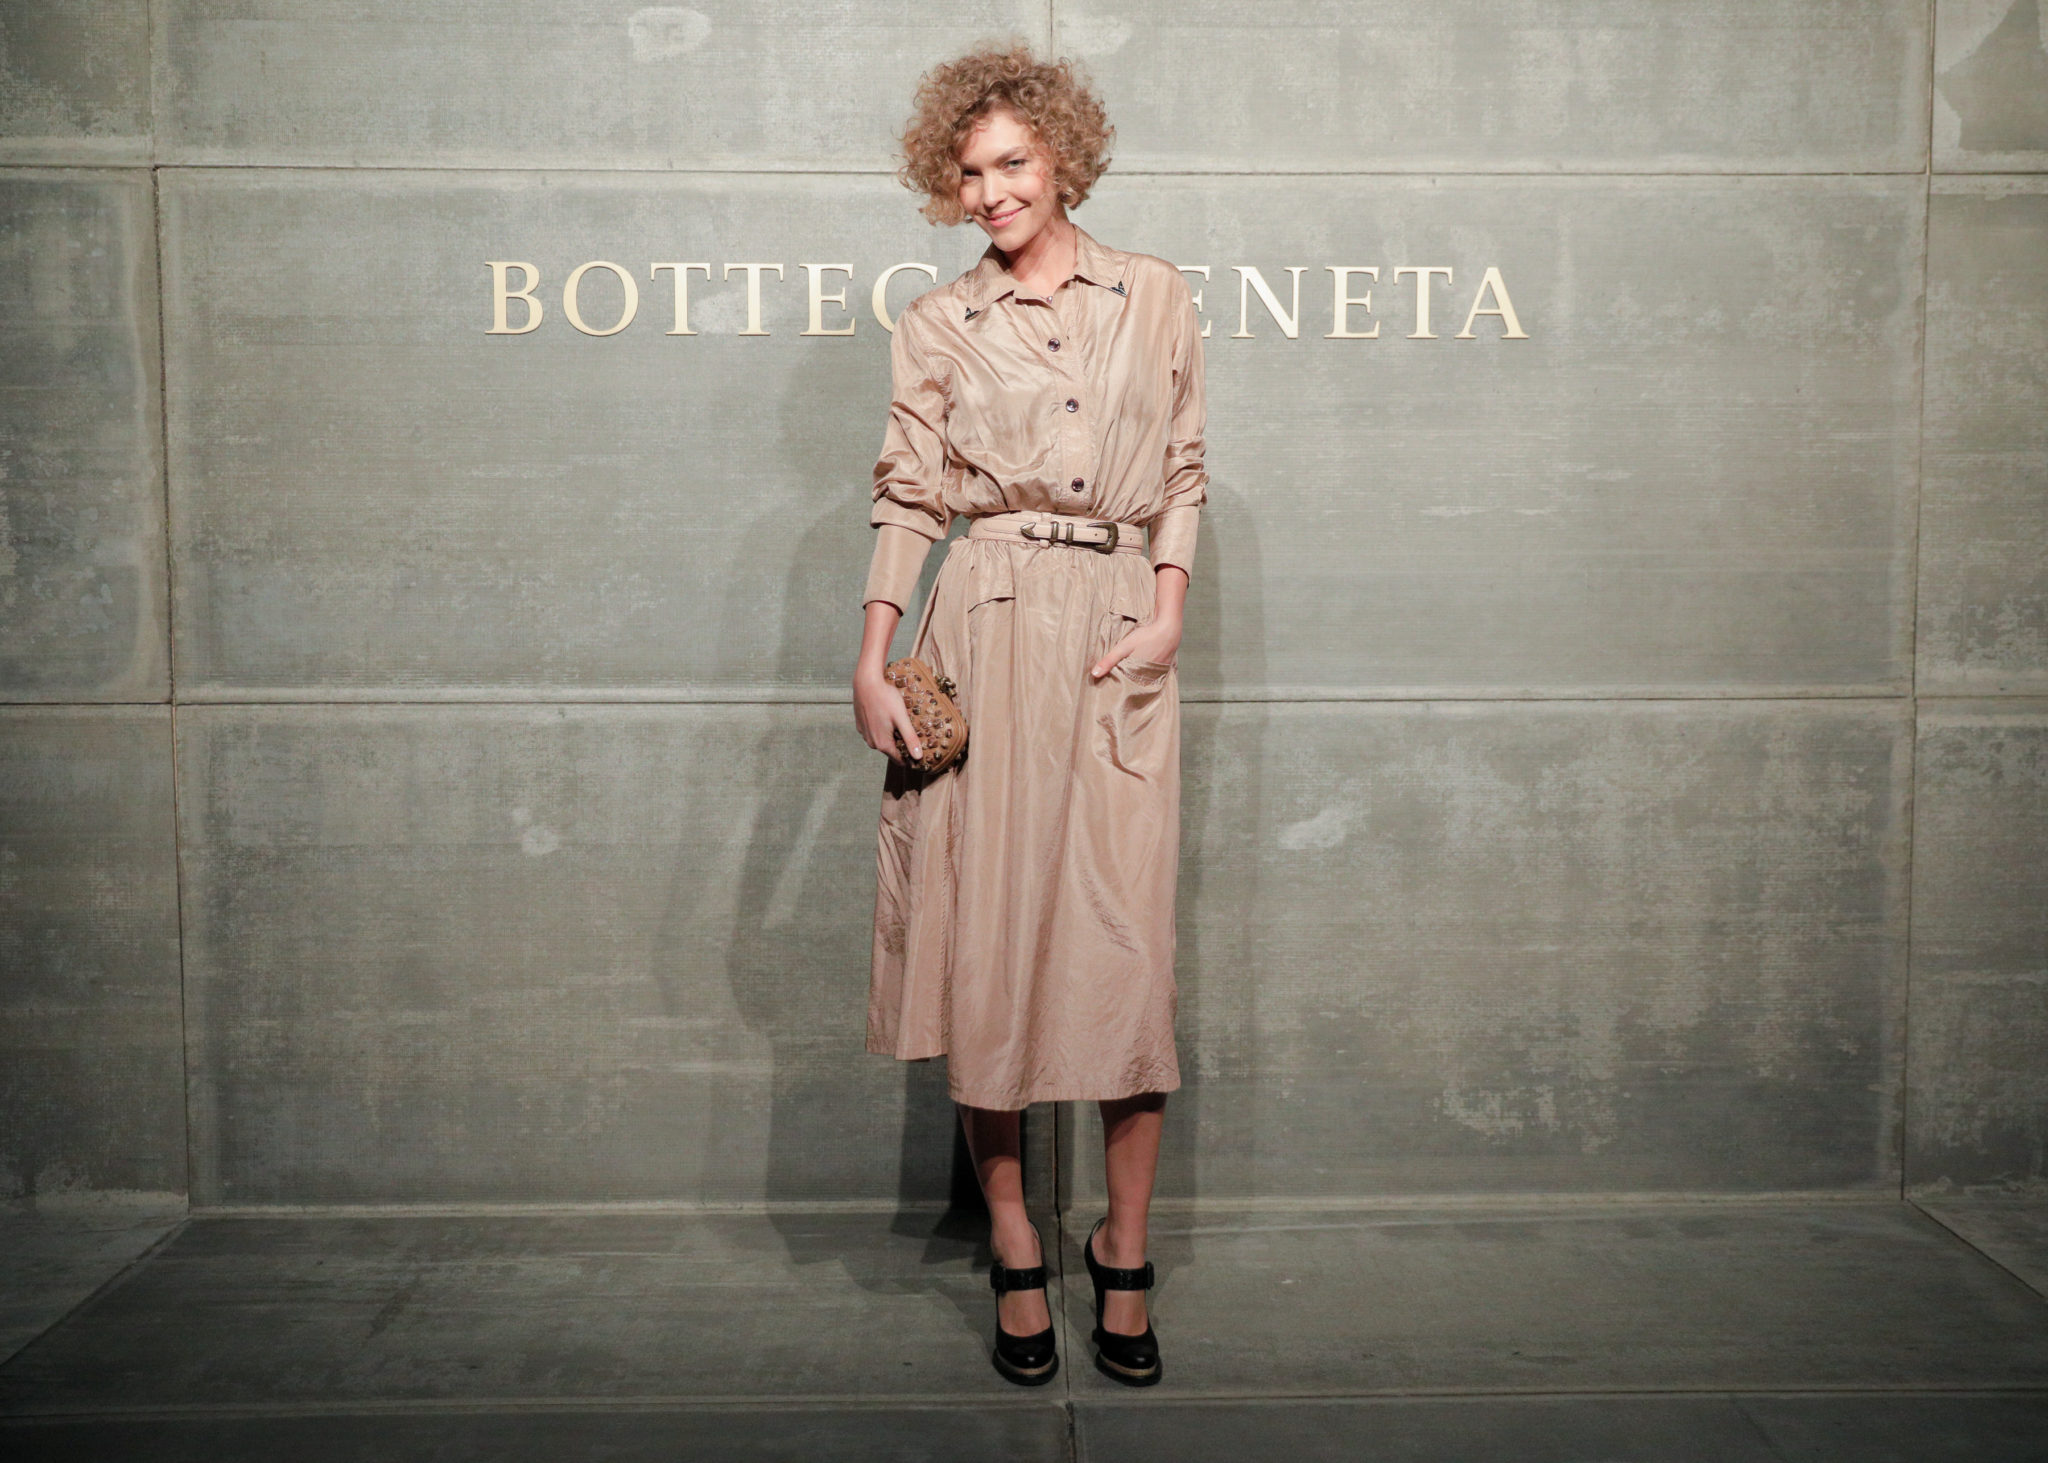 Arizona Muse, At the Bottega Veneta Fall Winter 2018 show at the American Stock Exchange in New York City